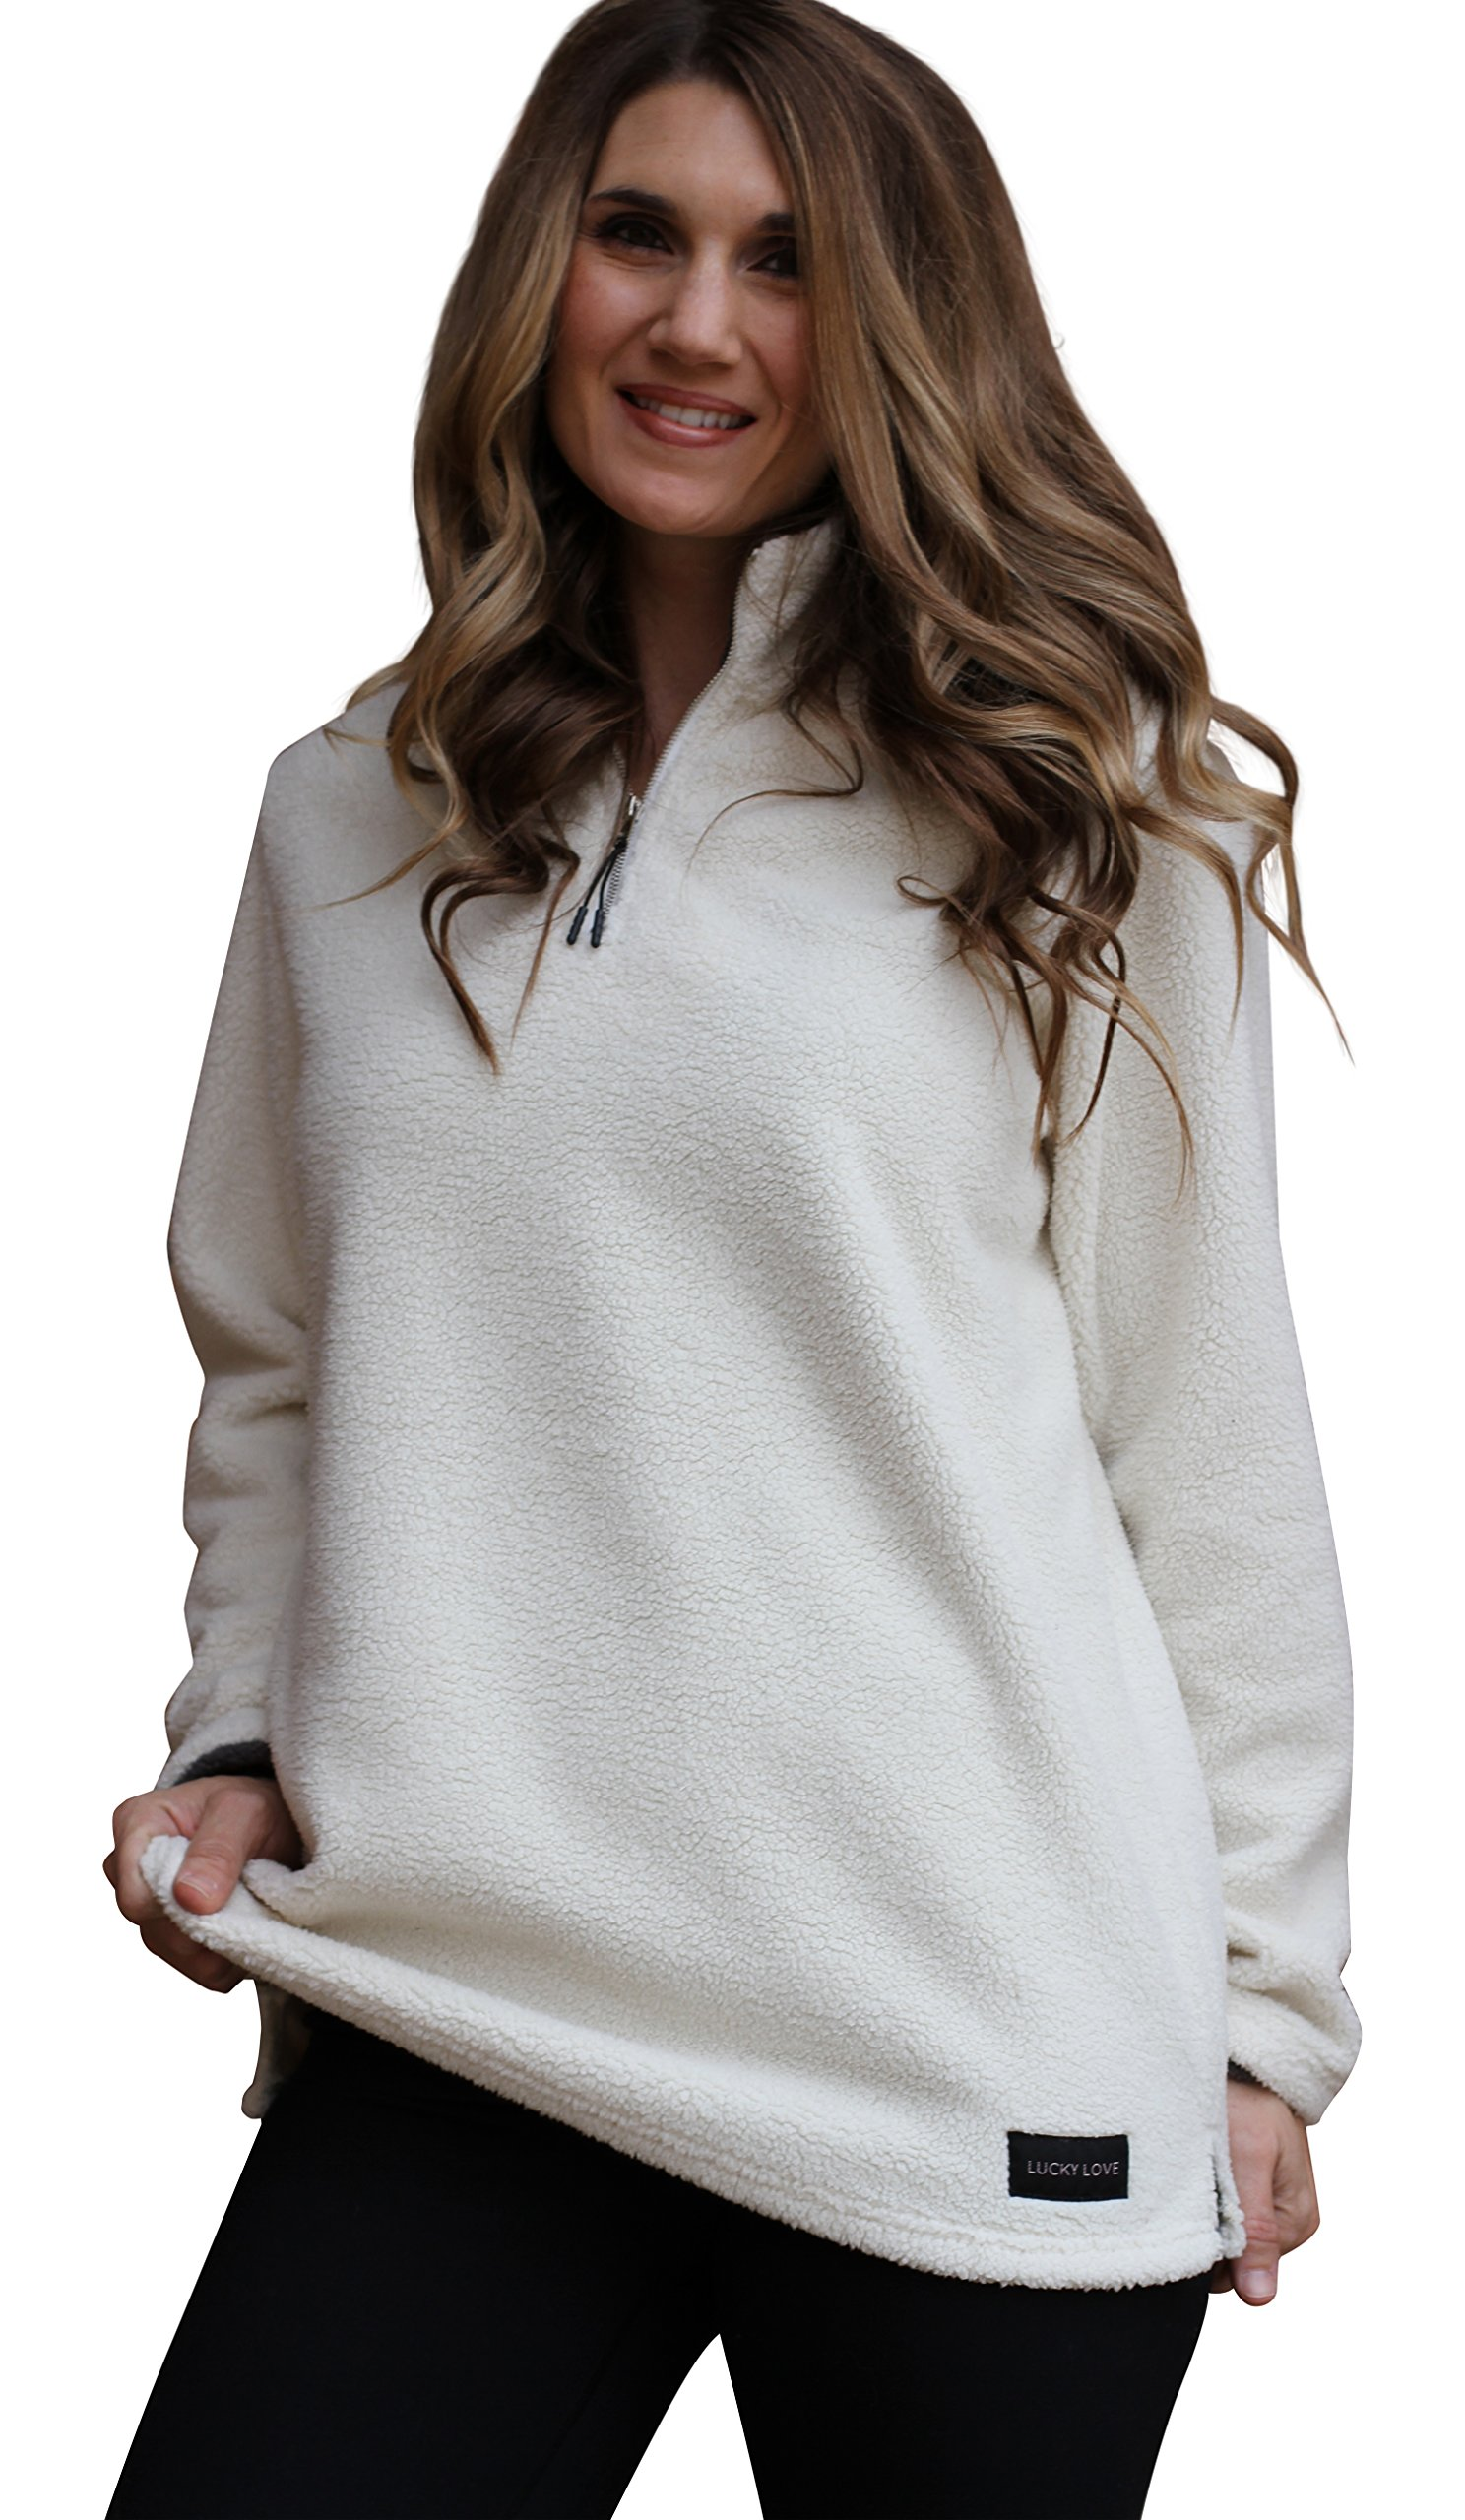 Lucky Love Womens Fleece Pullover Jacket, Half Zip Relaxed Fit, Womens & Plus Size White X-Large